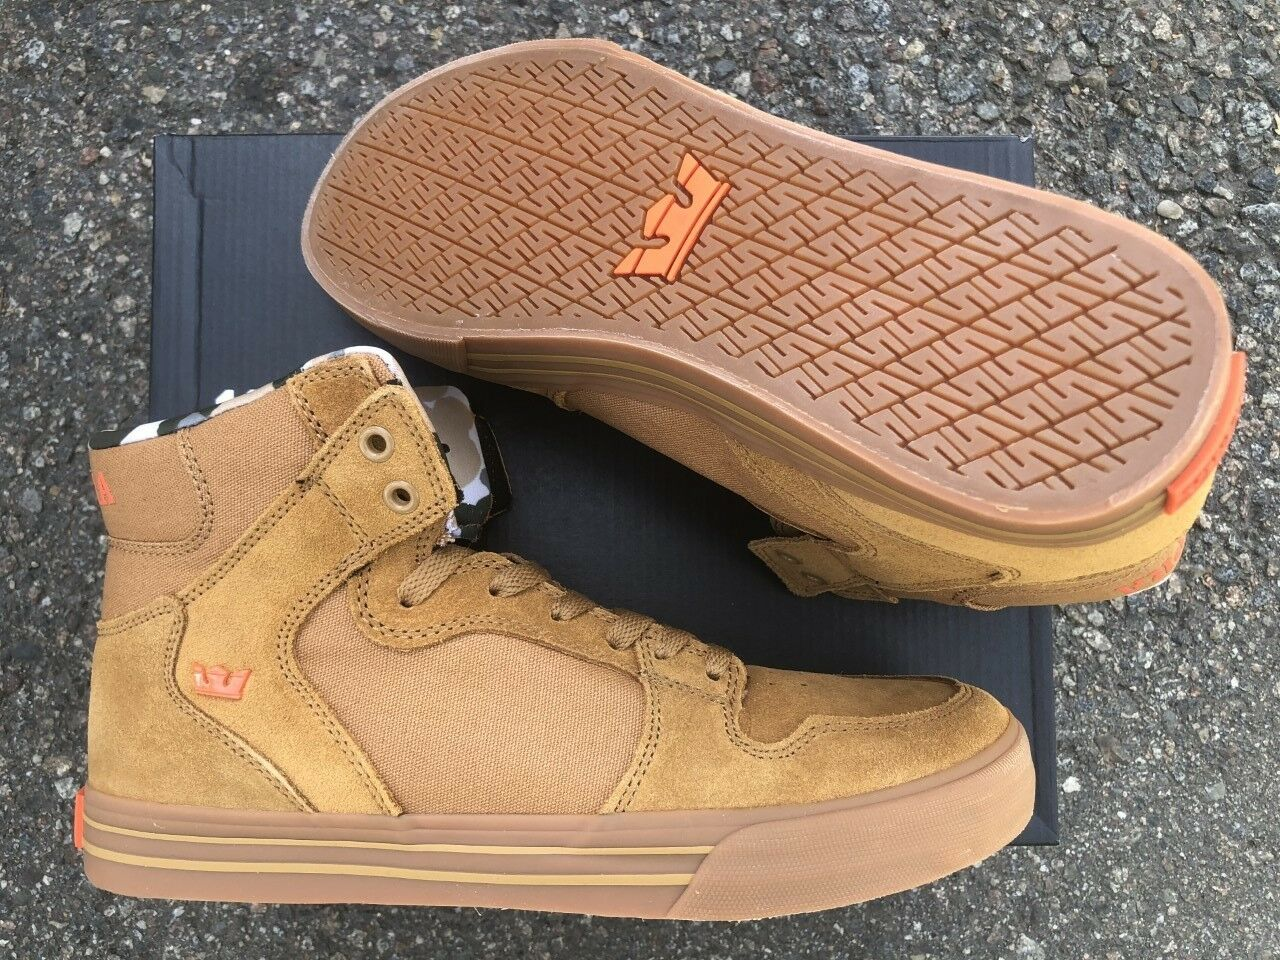 NEW SUPRA SUPRA SUPRA VAIDER TAN LIGHT GUM SURF BMX SNOW SKATEBOARD SPORTS schuhe 14 8057b4